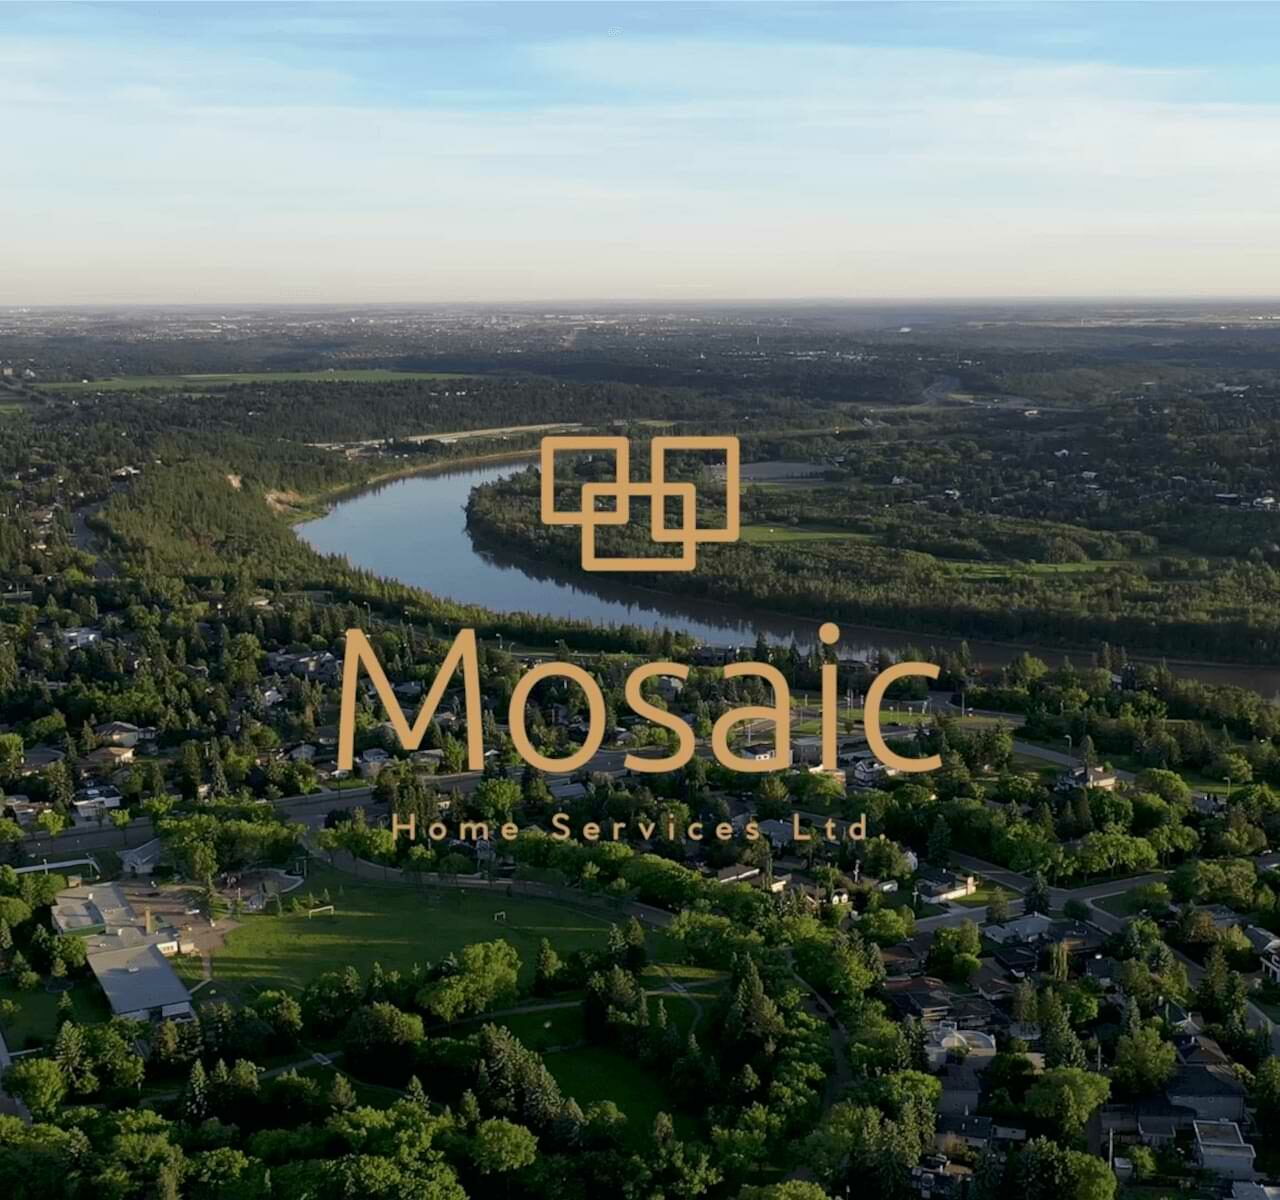 https://www.getmosaic.ca/wp-content/uploads/2021/04/Mosaic-Home-Services-Large-Enough-To-Serve-You-Thumbnail-1-1280x1200.jpg